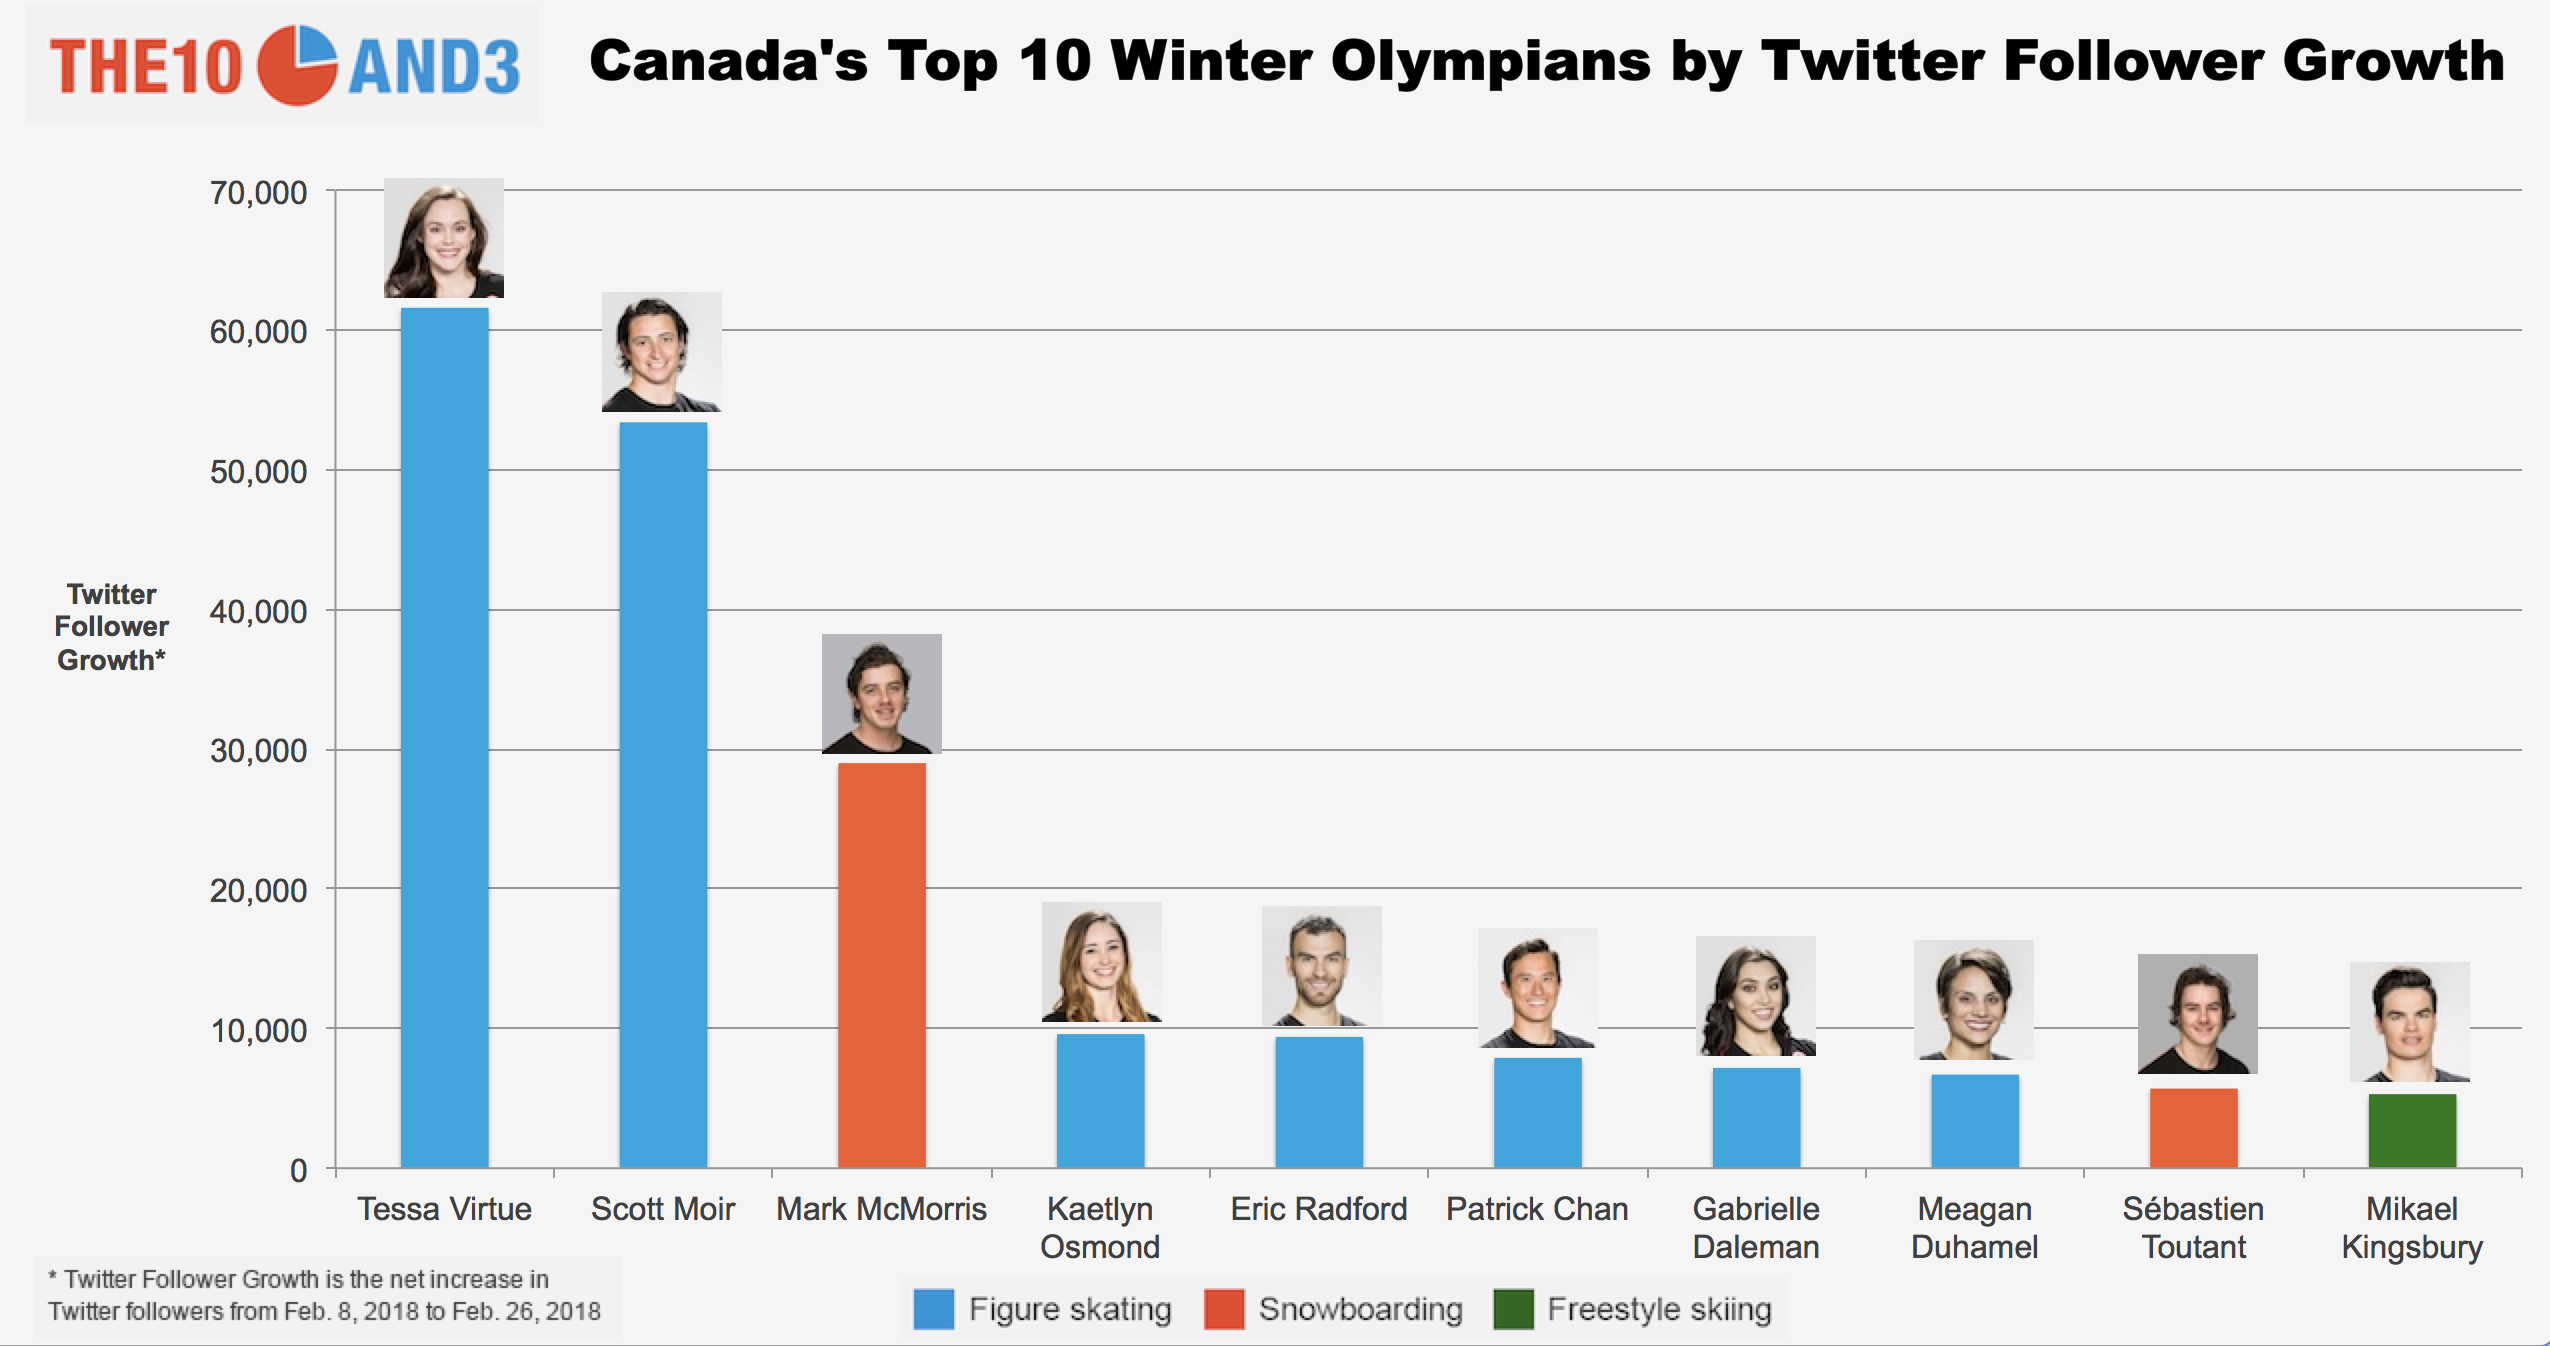 Chart of Canada's Top 10 Winter Olympians by Twitter Follower Growth